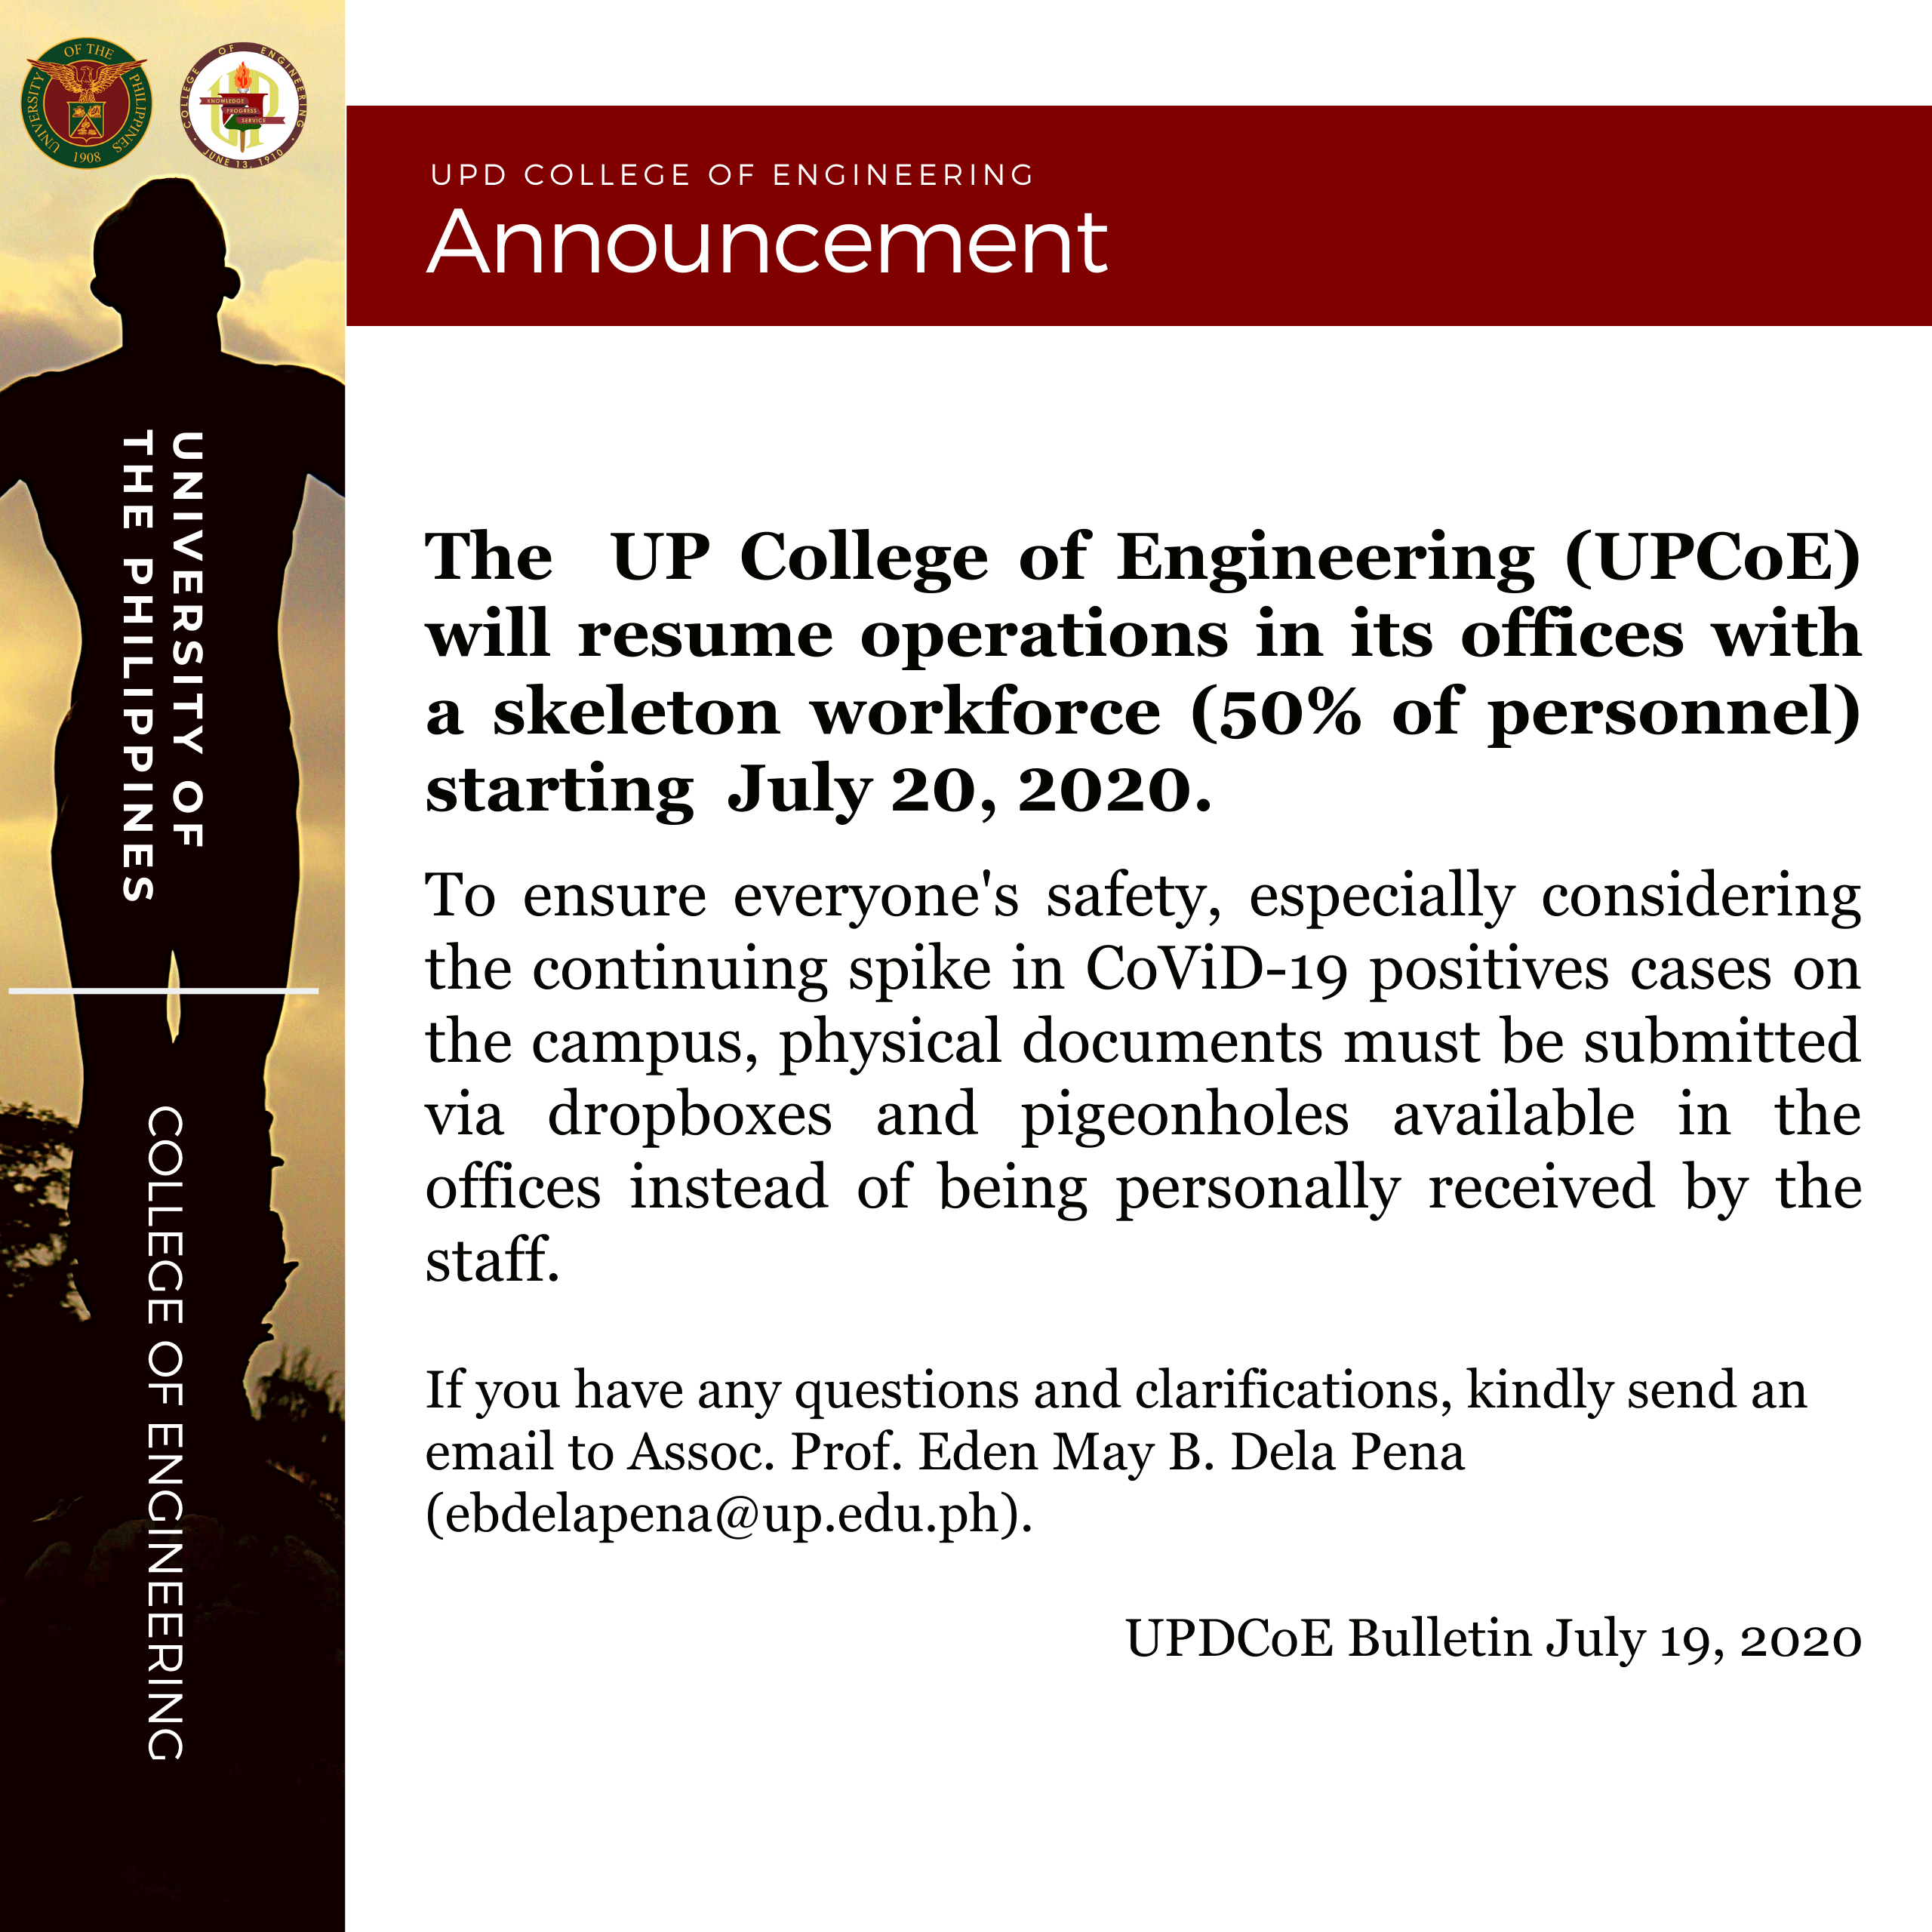 Announcement – UPD CoE Bulletin July 19, 2020